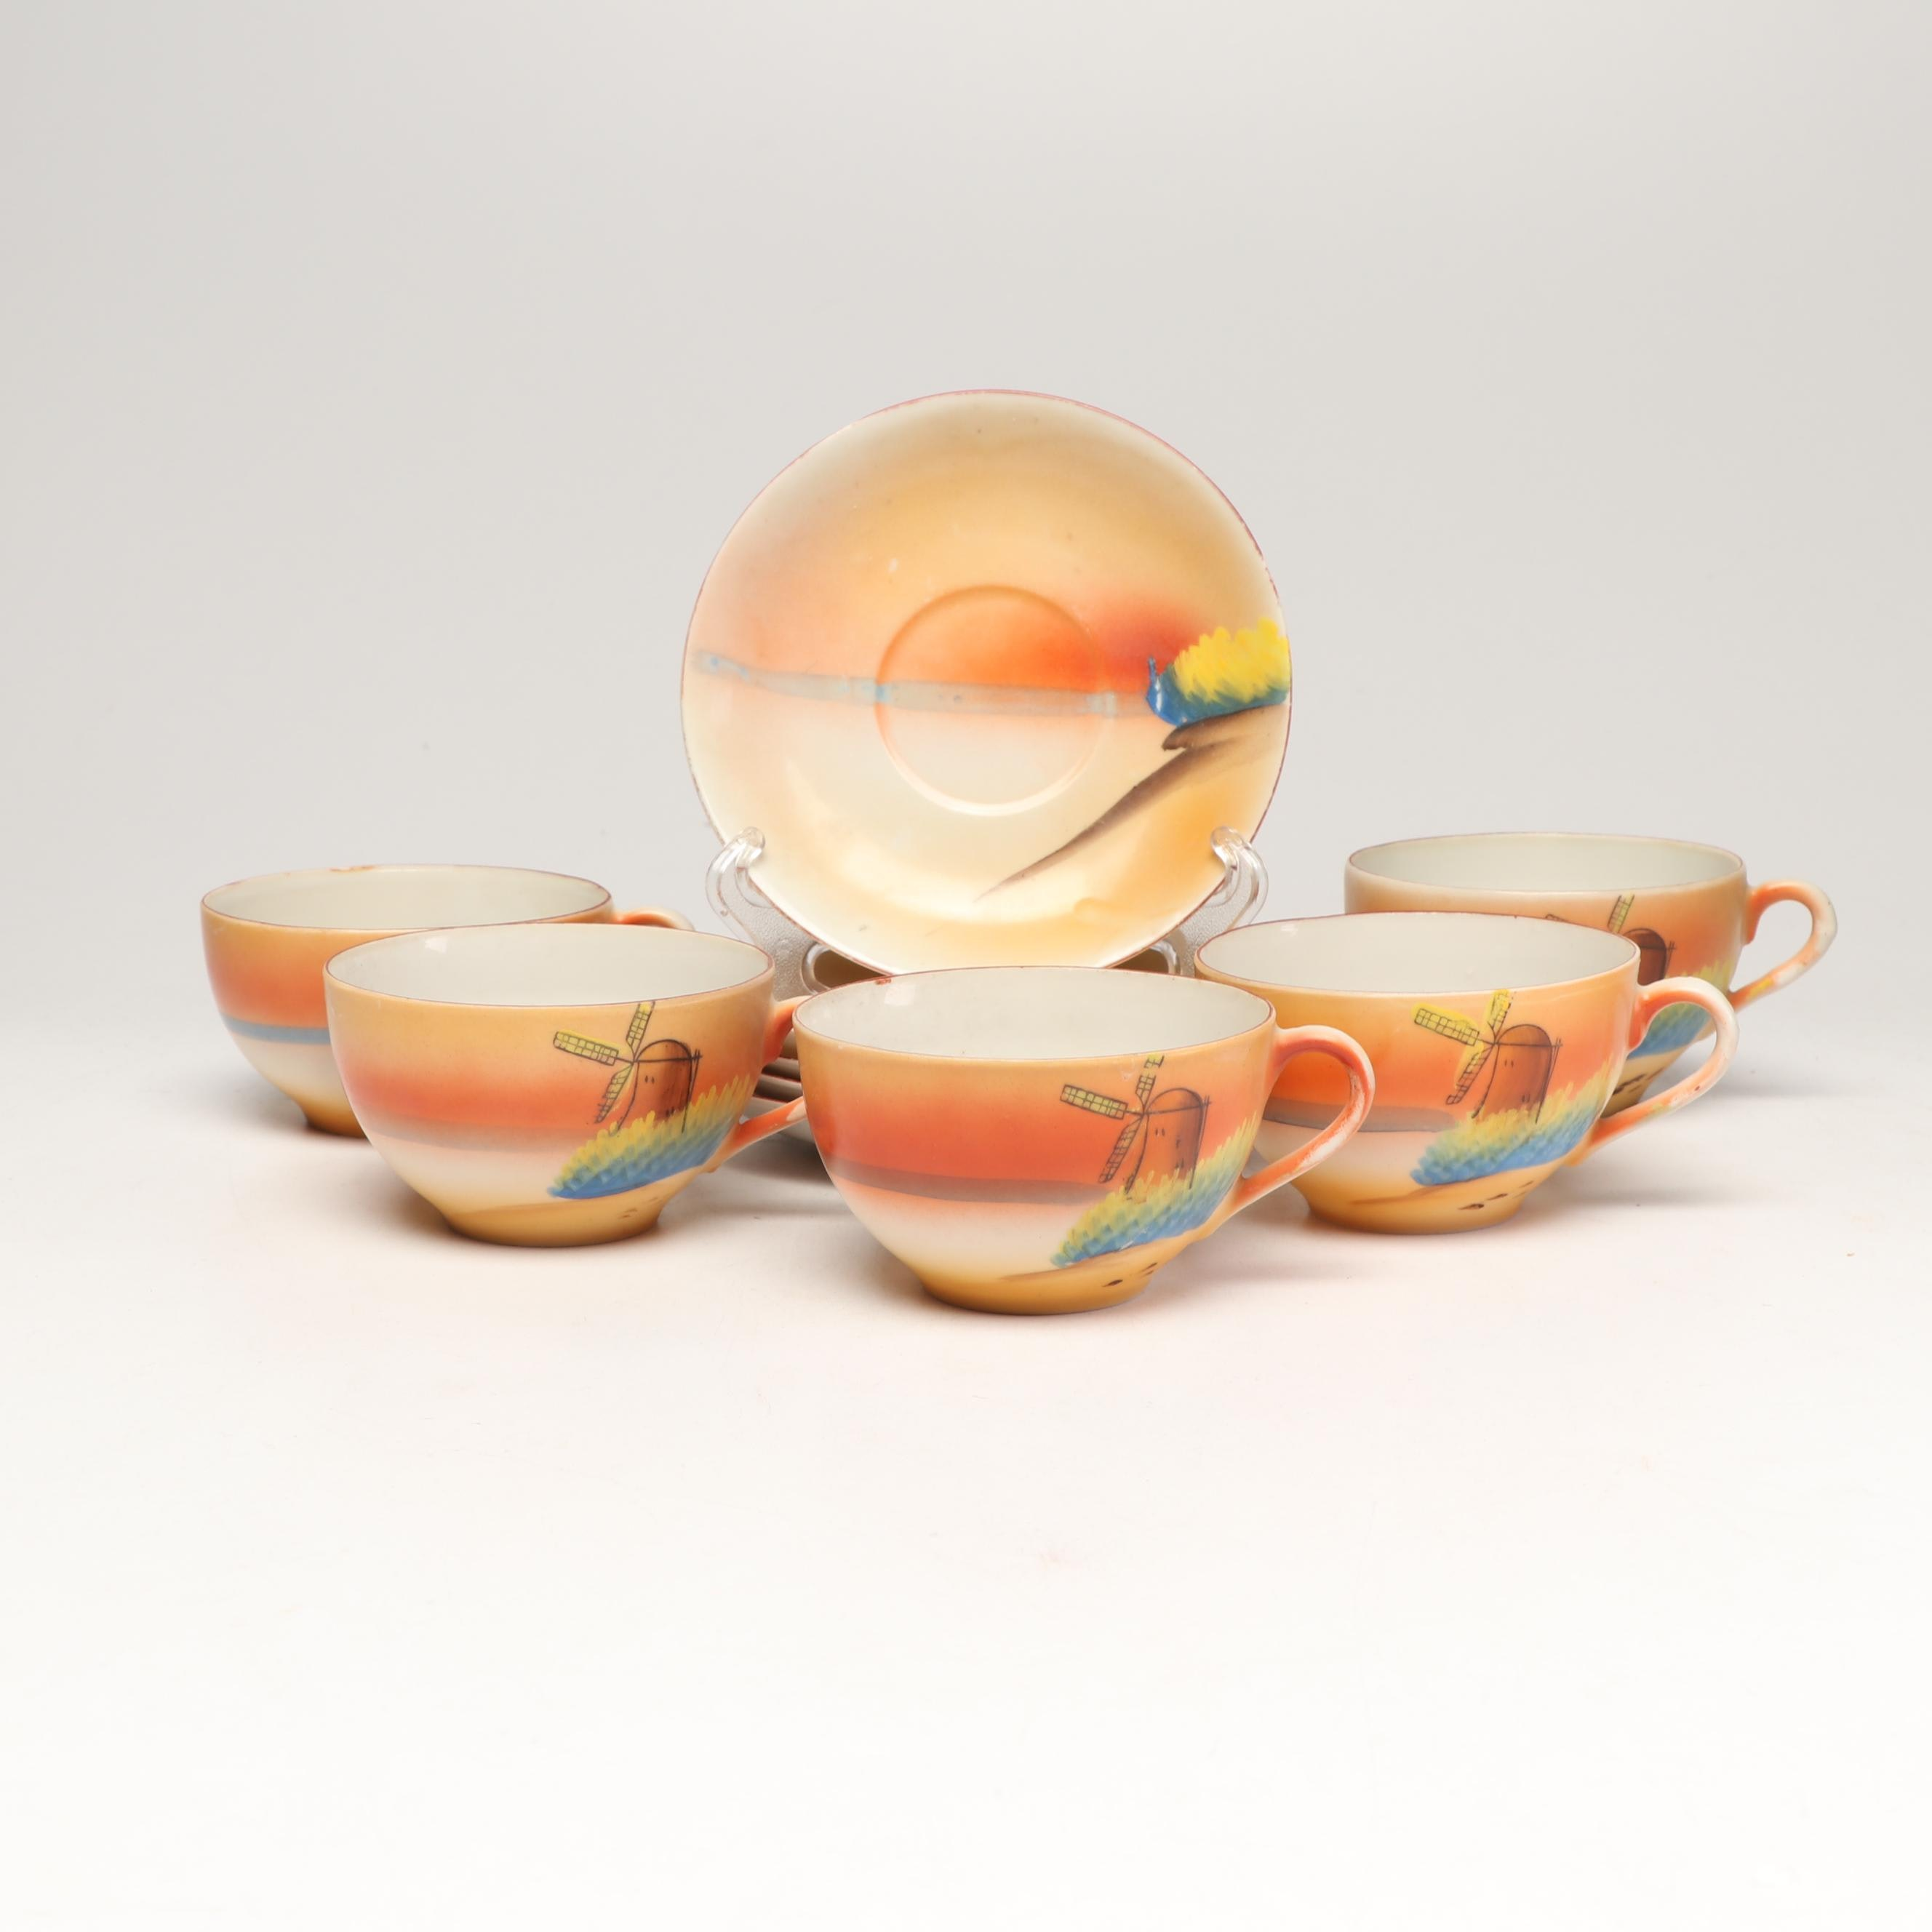 Japanese Lusterware Teacups and Saucers with Hand Painted Windmills, Mid-Century